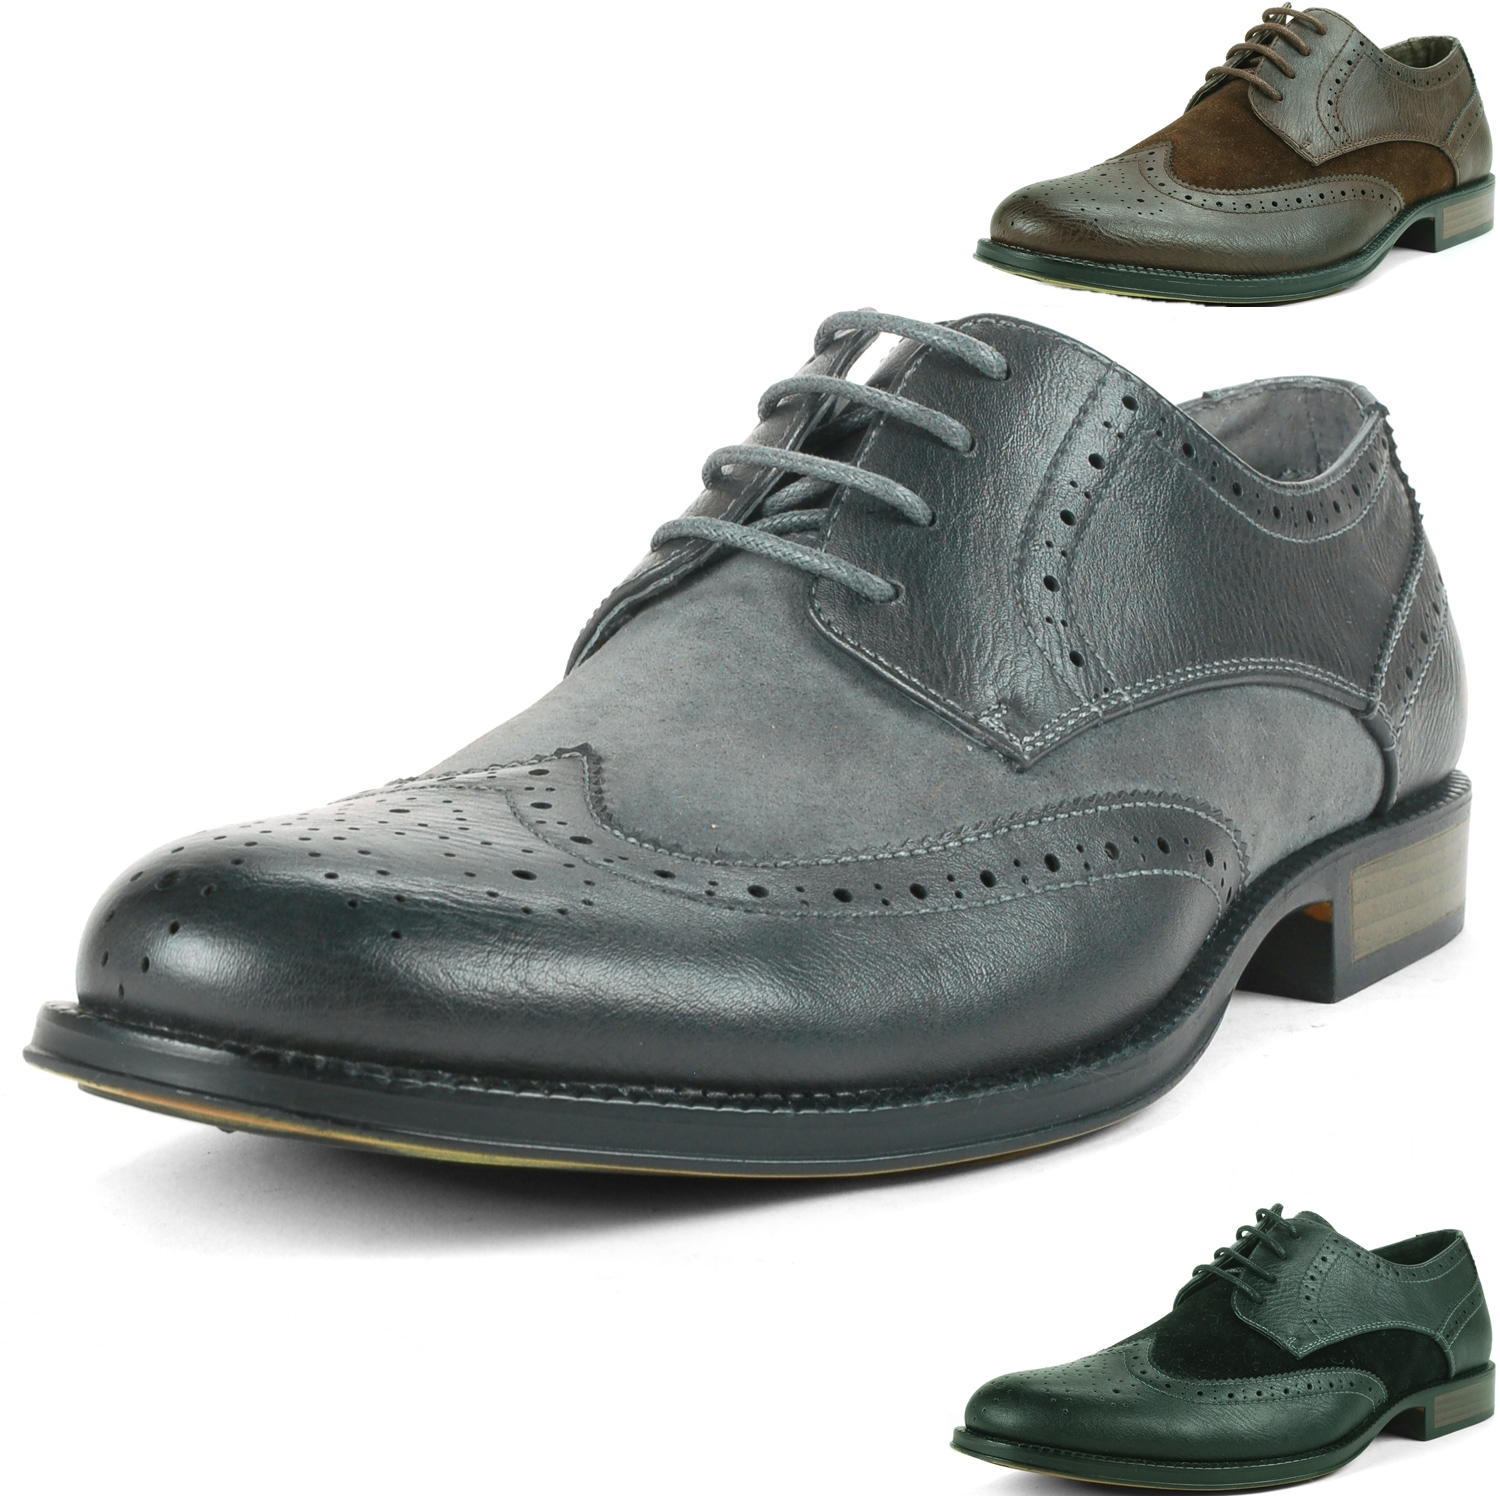 Alpine Swiss Zurich Men's Wing Tip Dress Shoes Two Tone ...